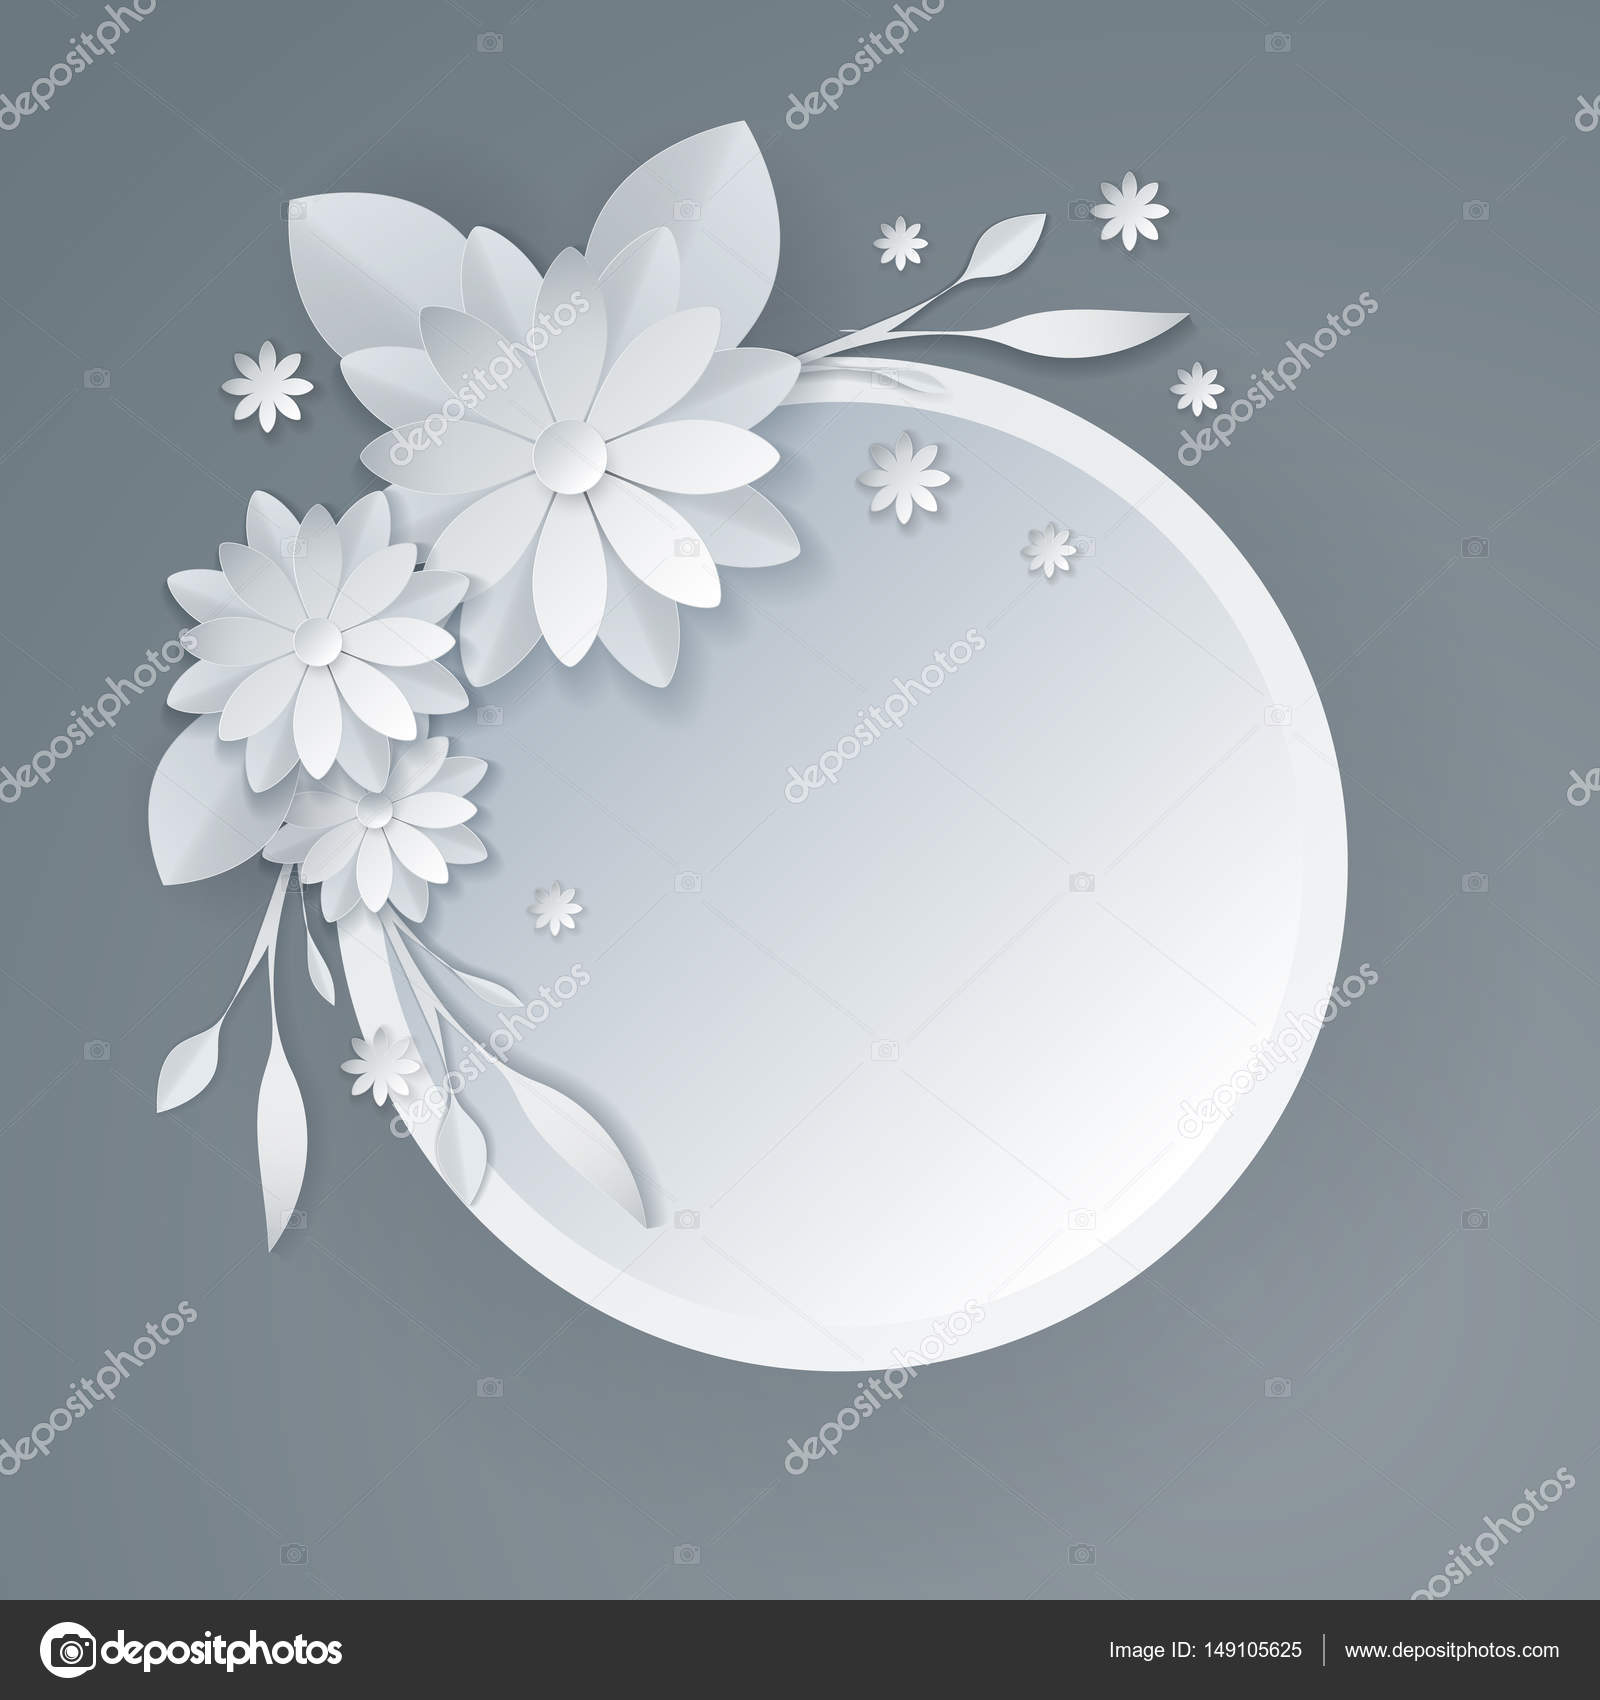 White Paper Flowers Floral Background Stock Vector C Totallyblond